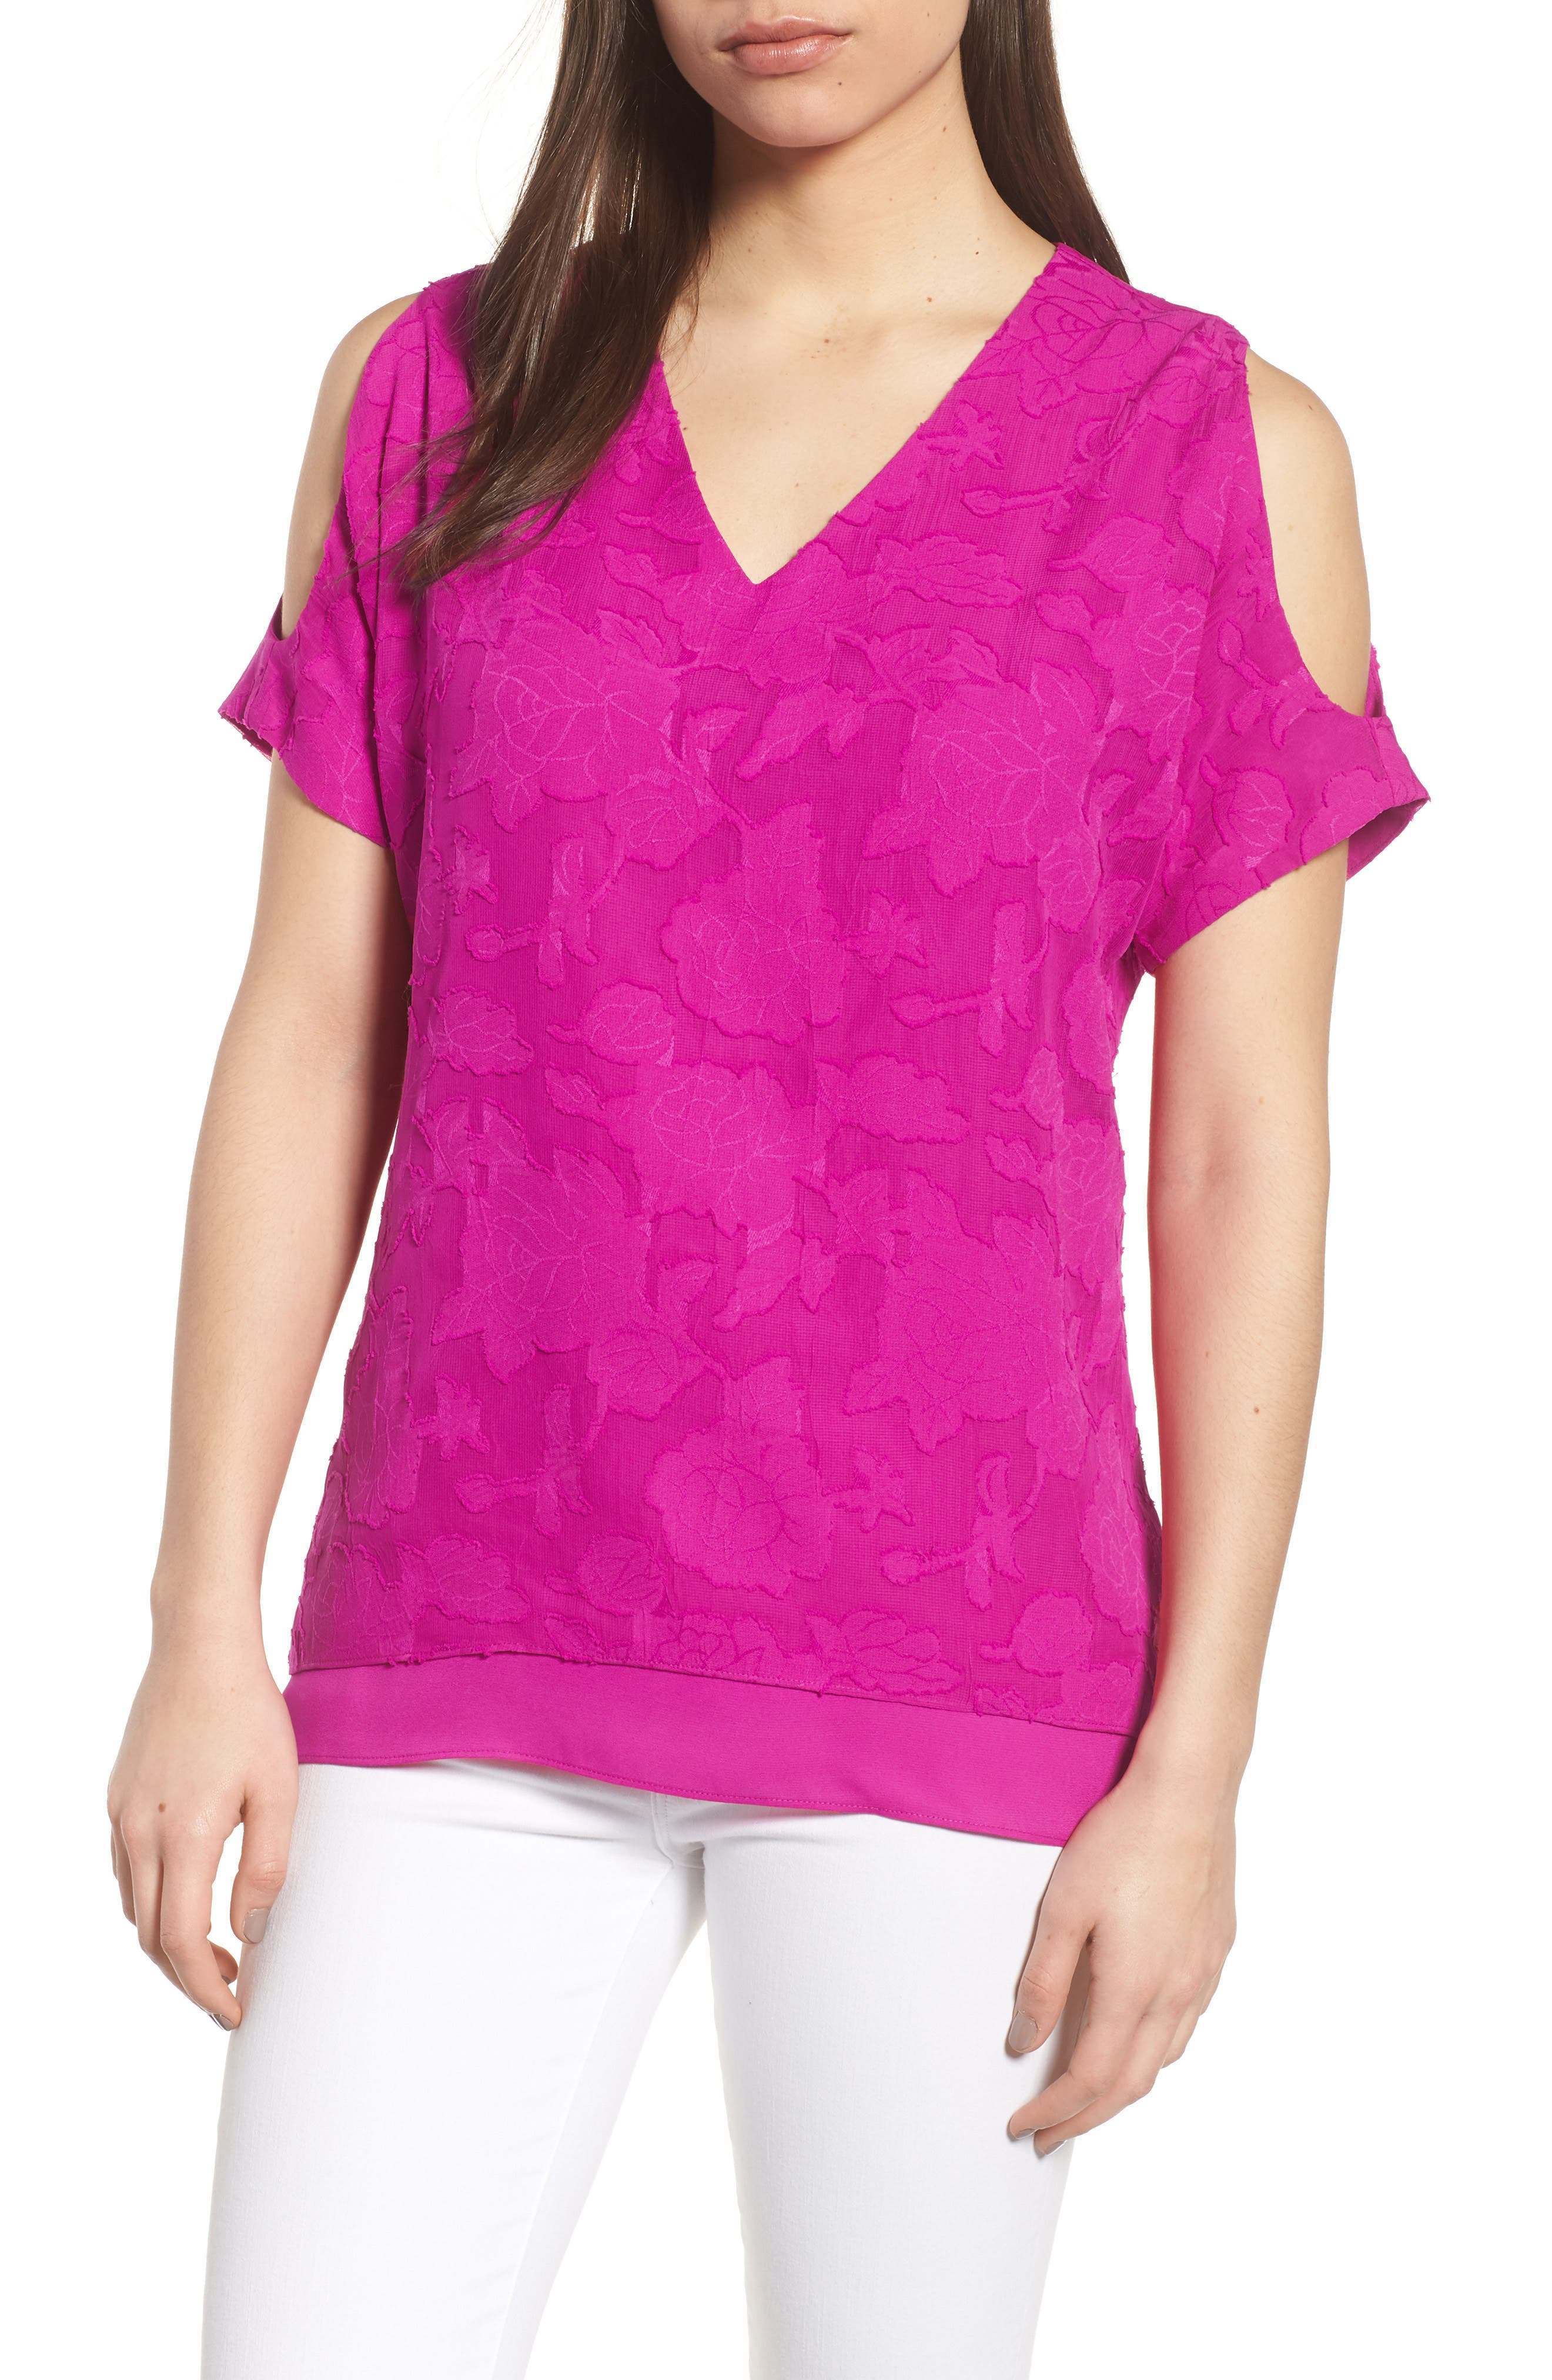 Floral Jacquard Cold Shoulder Top,                             Main thumbnail 1, color,                             686-Pink Nouveau